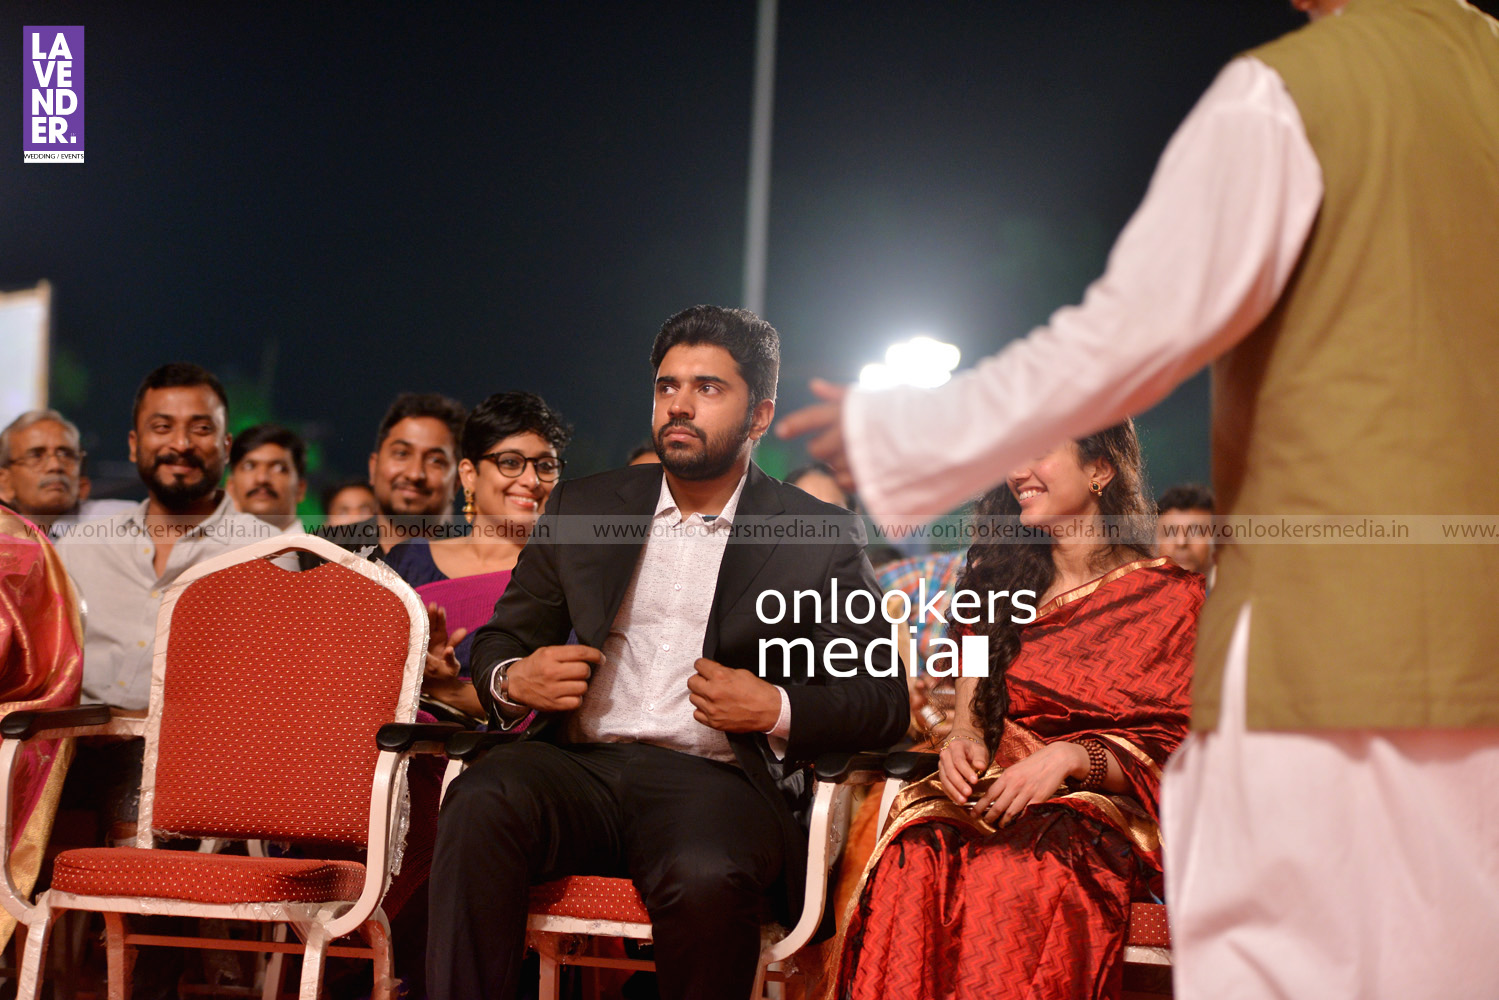 http://onlookersmedia.in/wp-content/uploads/2016/02/Nivin-Pauly-at-Asianet-Film-Award-2016-17.jpg